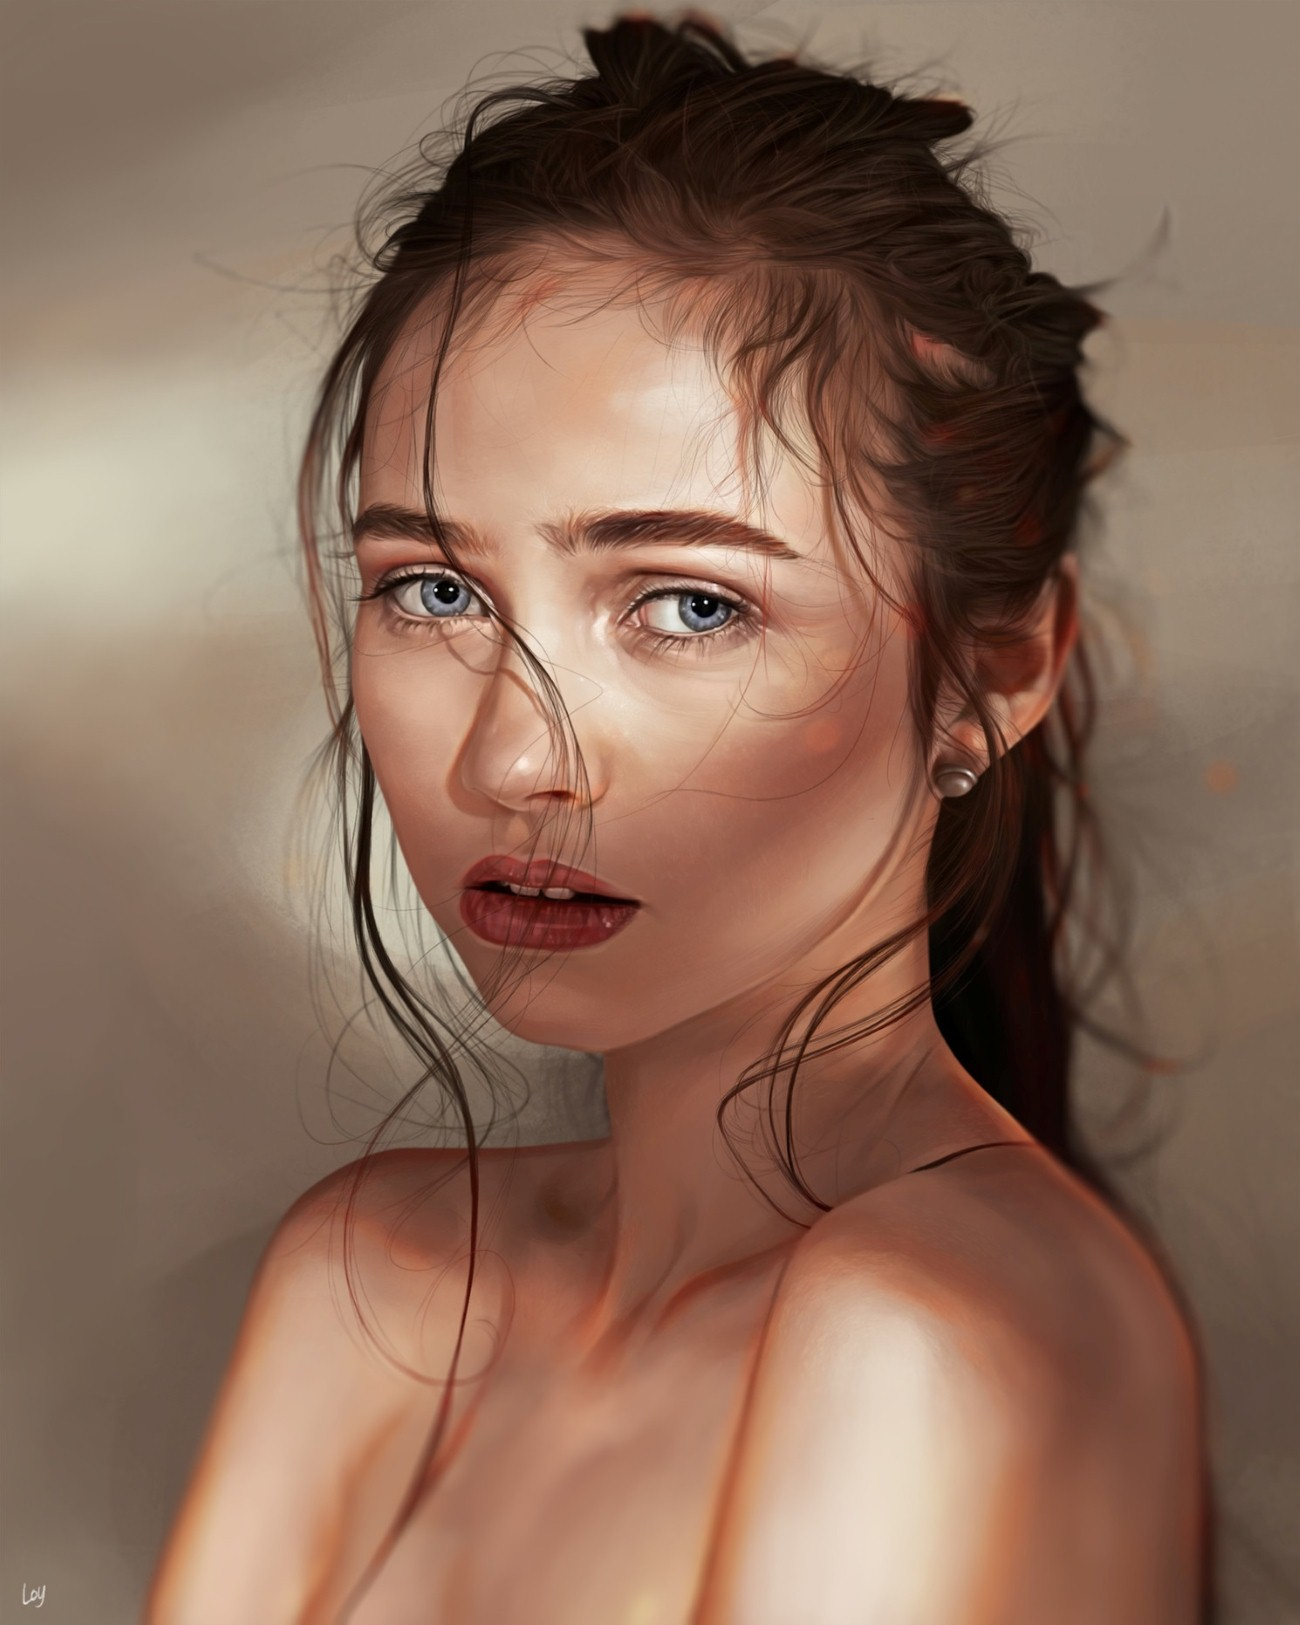 Karl Baldon | Paintable.cc Digital Painting Inspiration - Learn the Art of Digital Painting! #digitalpainting #digitalart